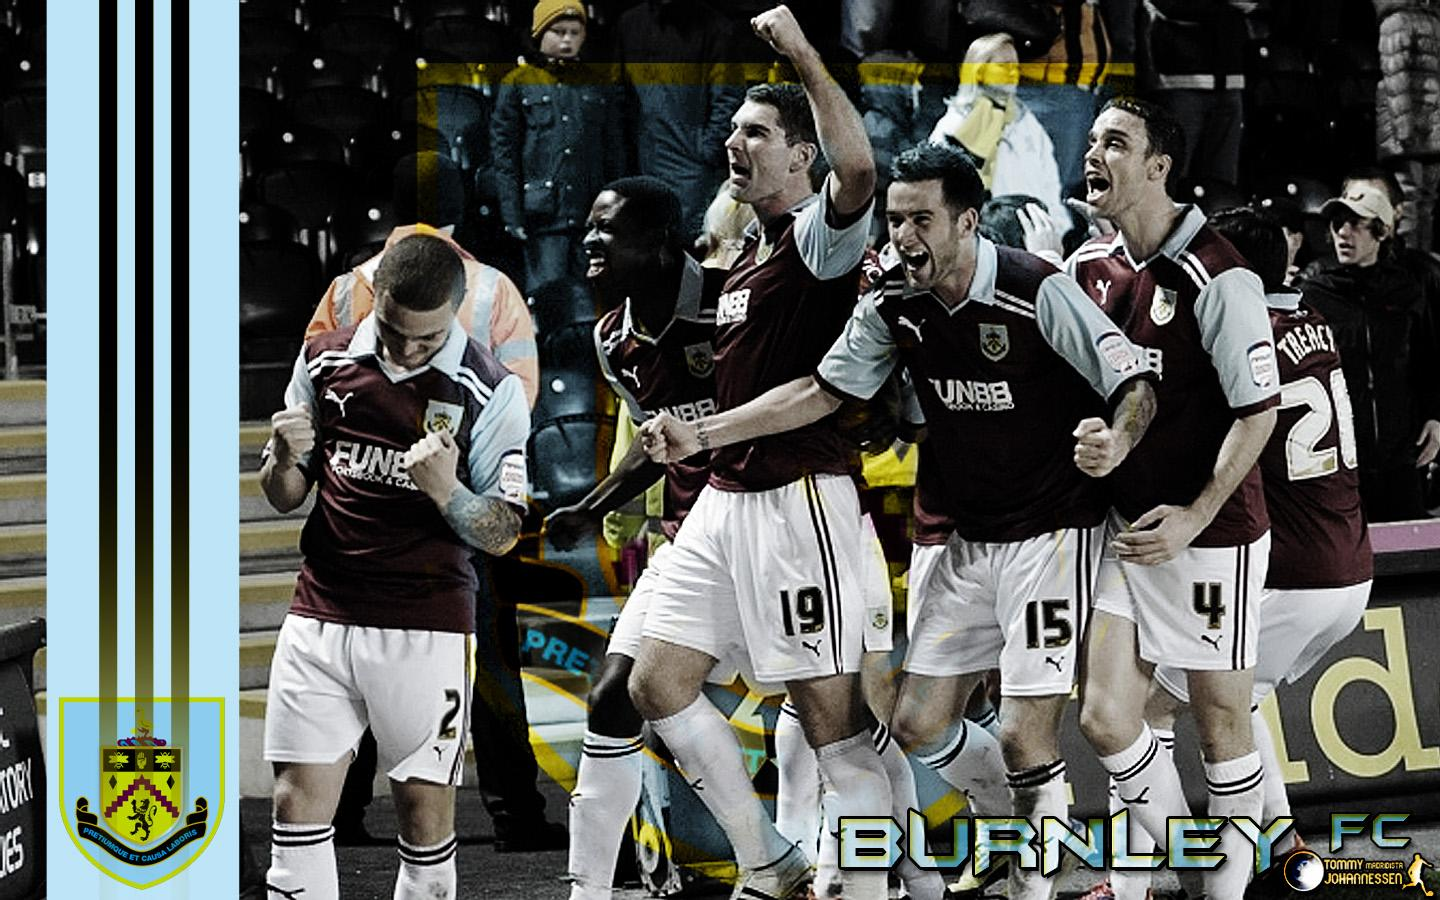 Burnley F.C | HD Football Wallpapers